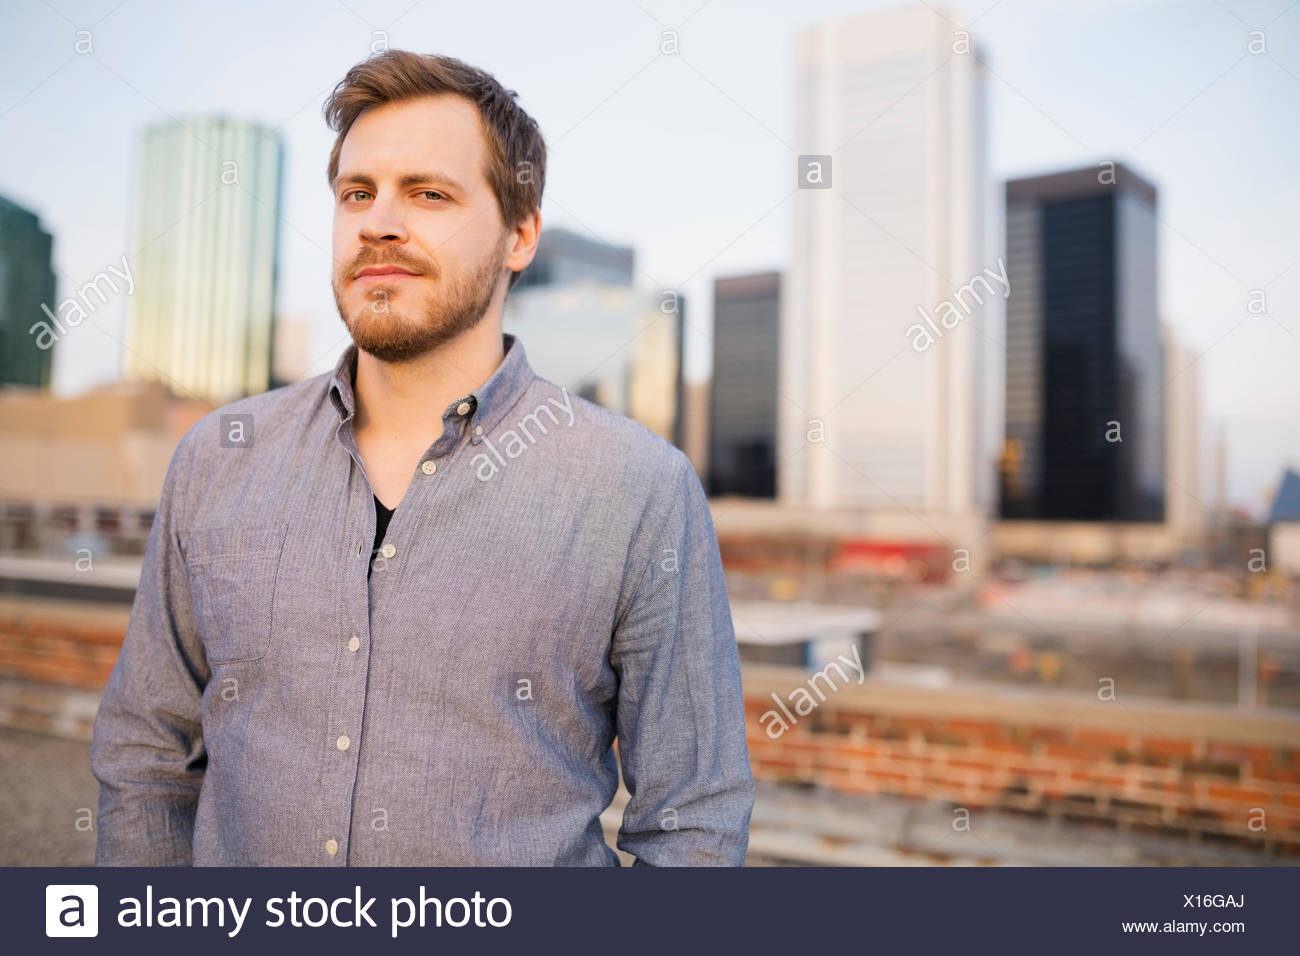 Portrait de l'homme on urban rooftop Photo Stock